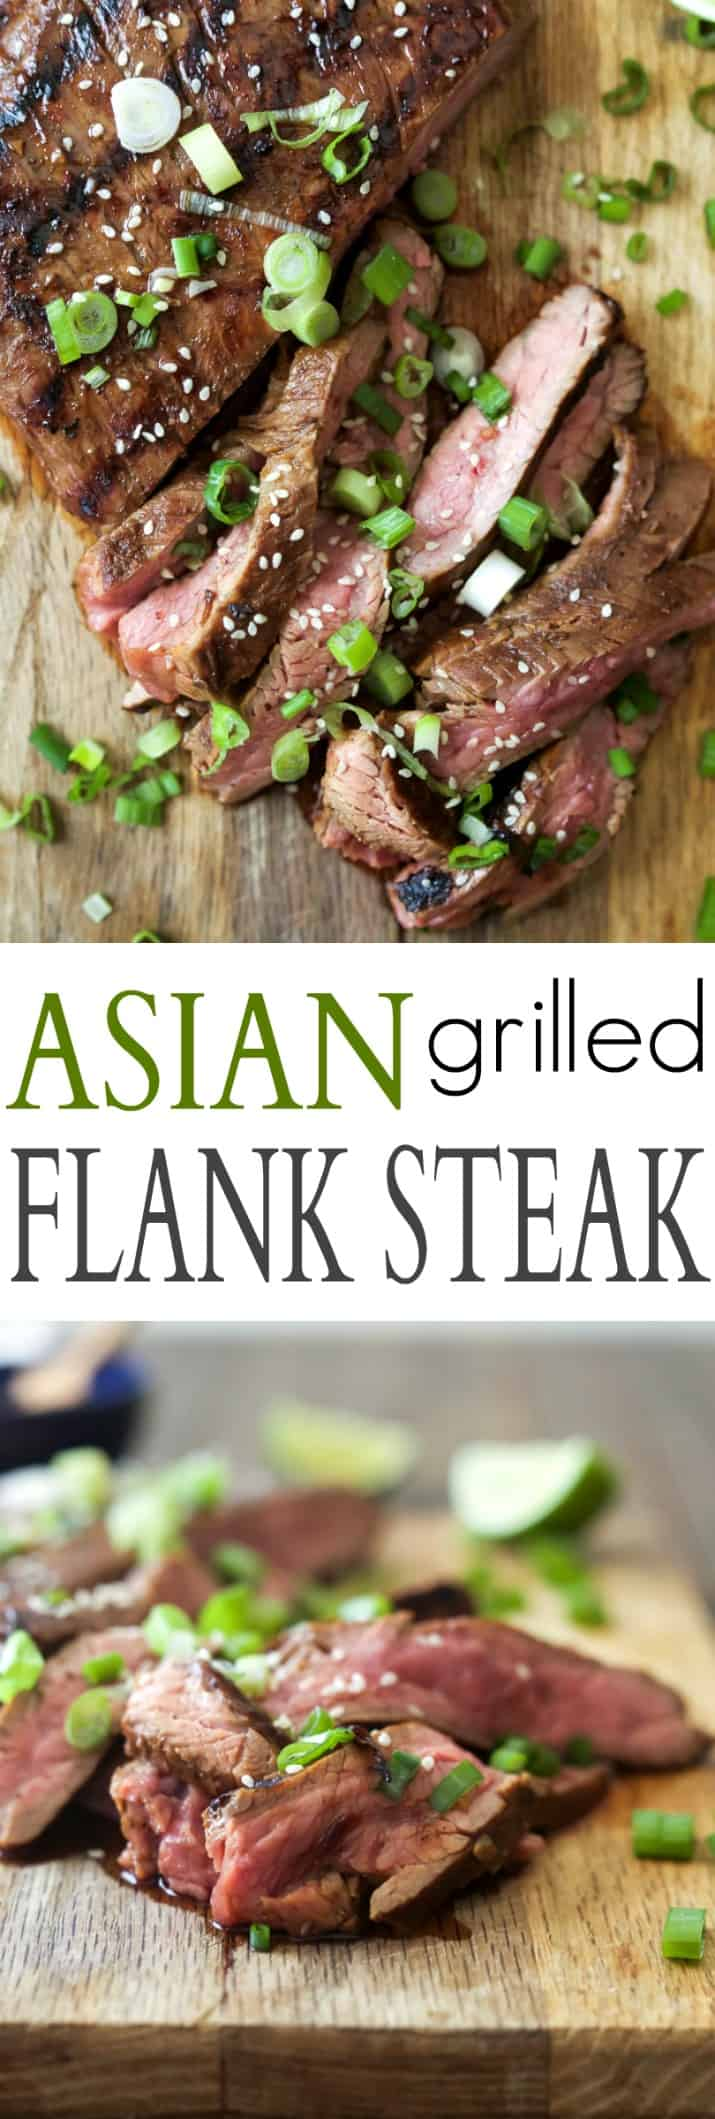 Pinterest image for Asian Grilled Flank Steak